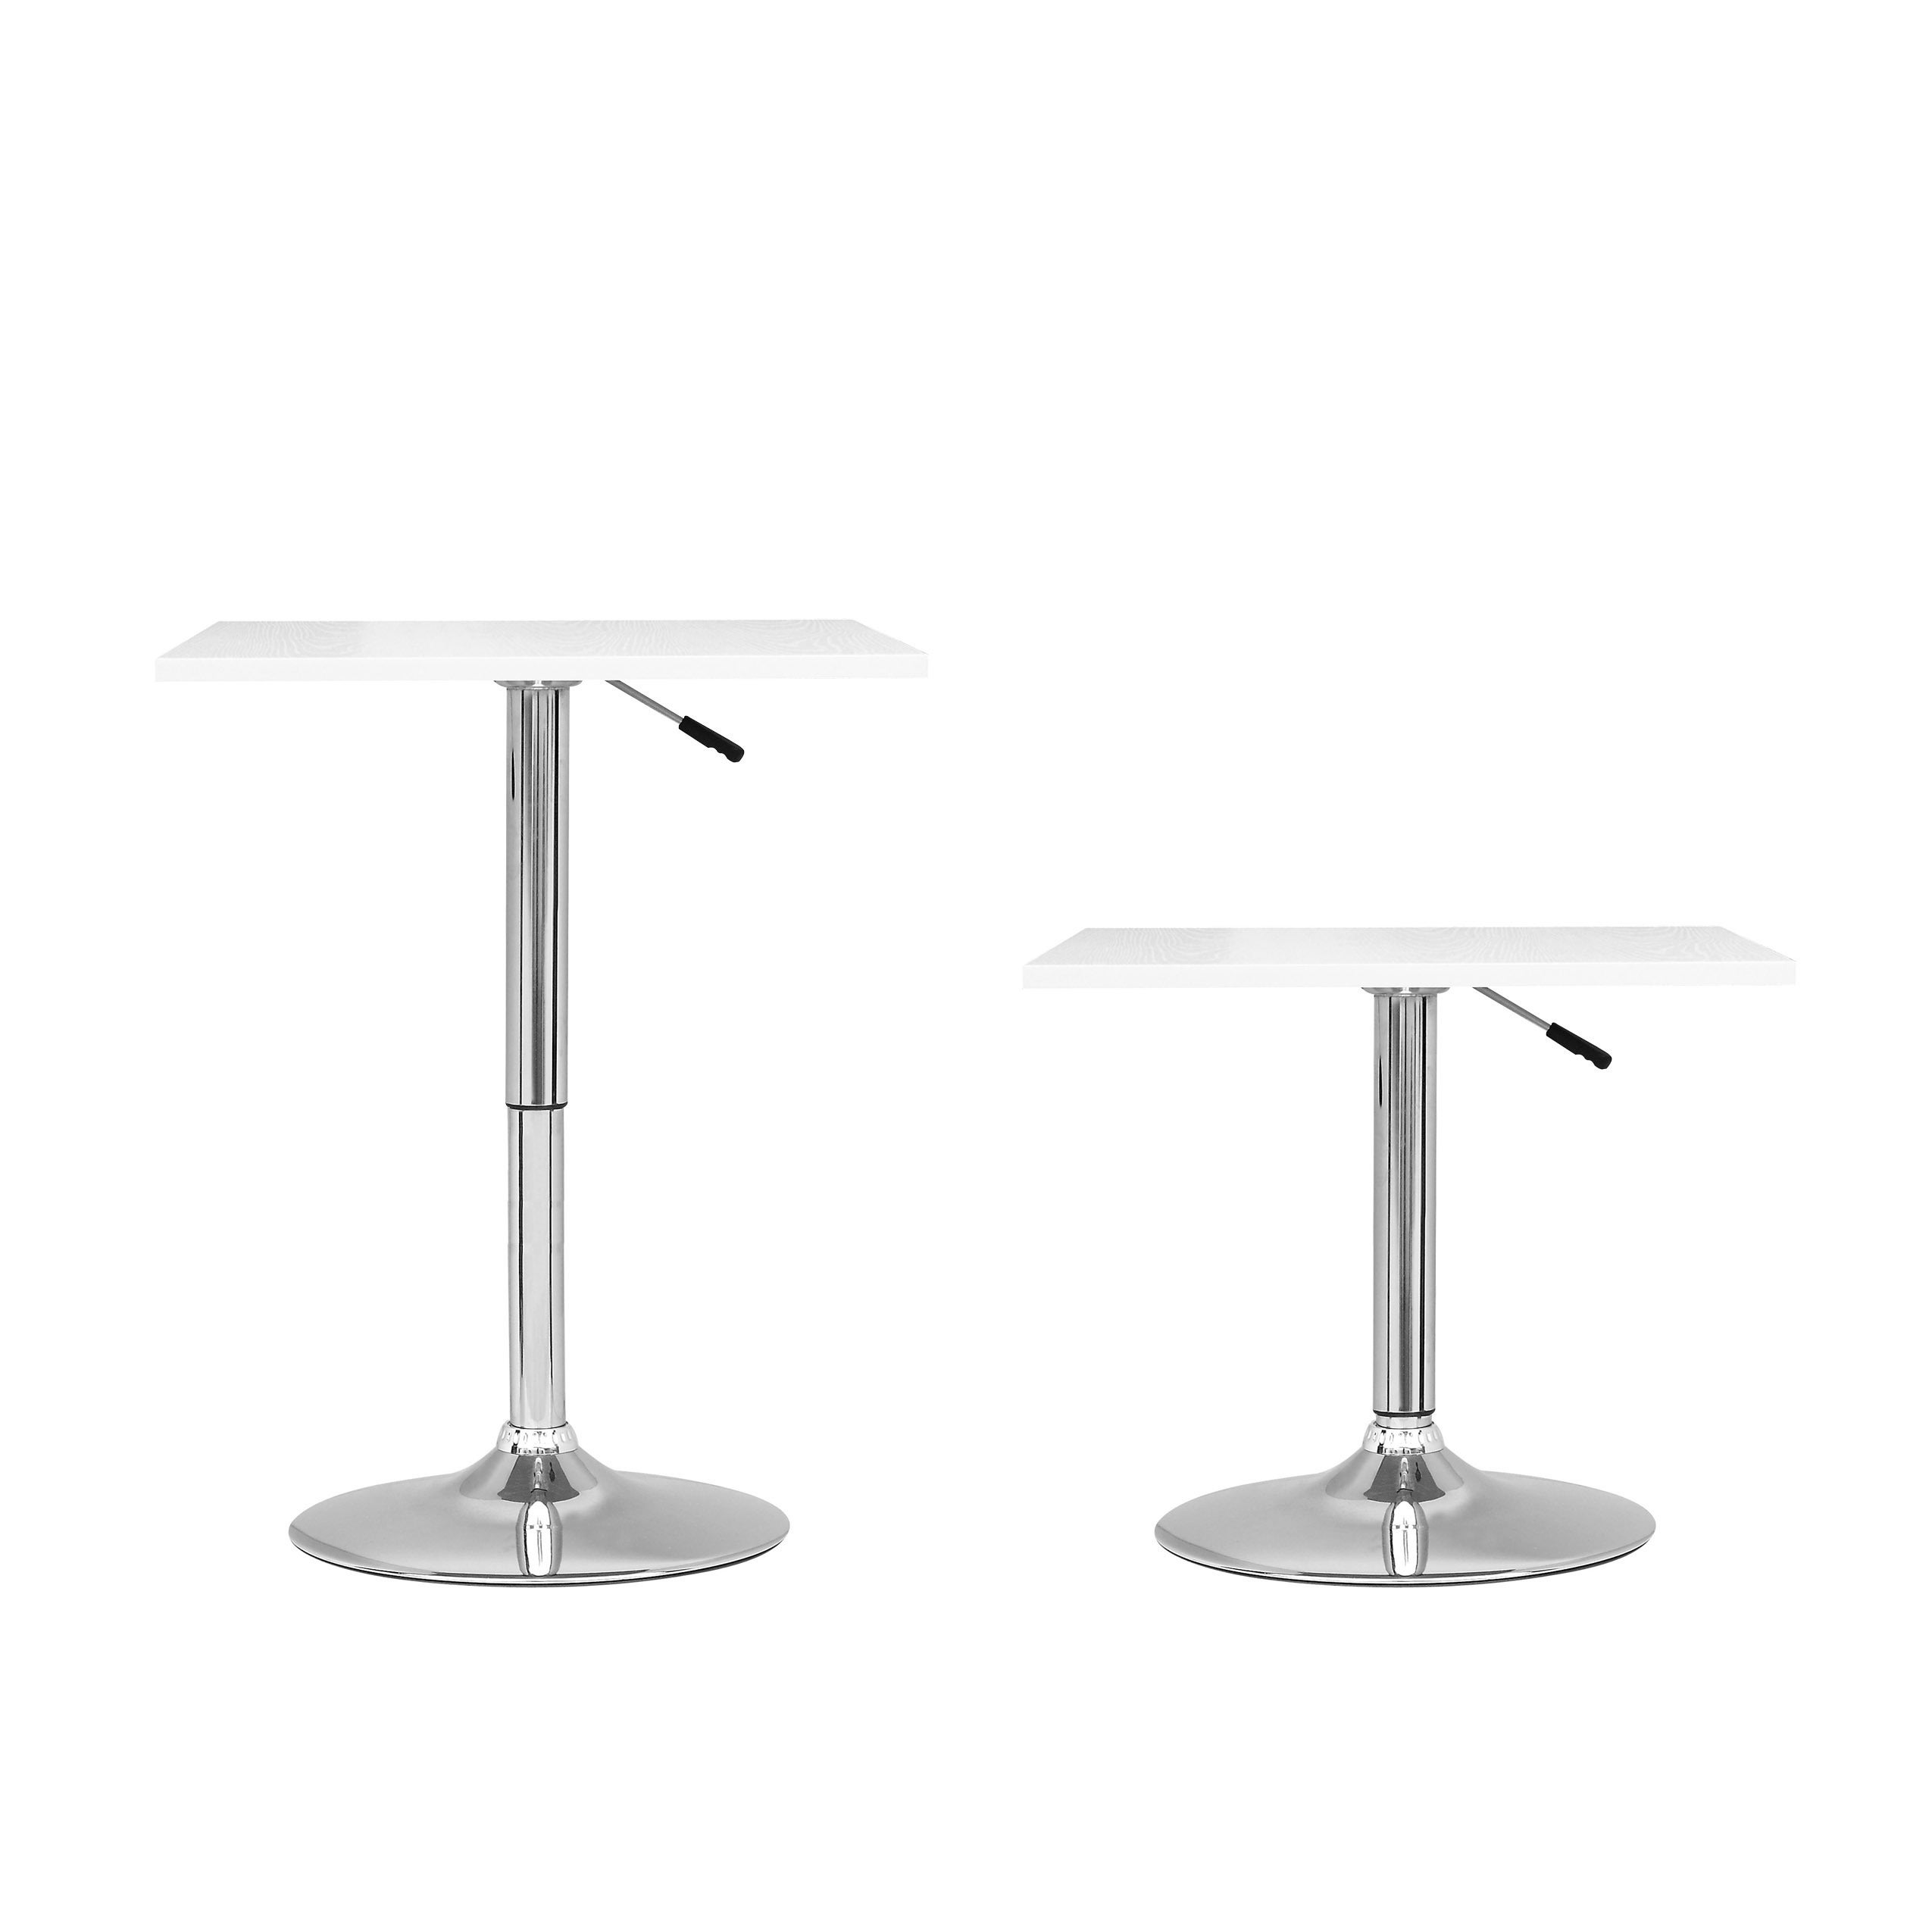 Corliving Adjule Height Square Bar Table Ships To Canada Ca 9164795